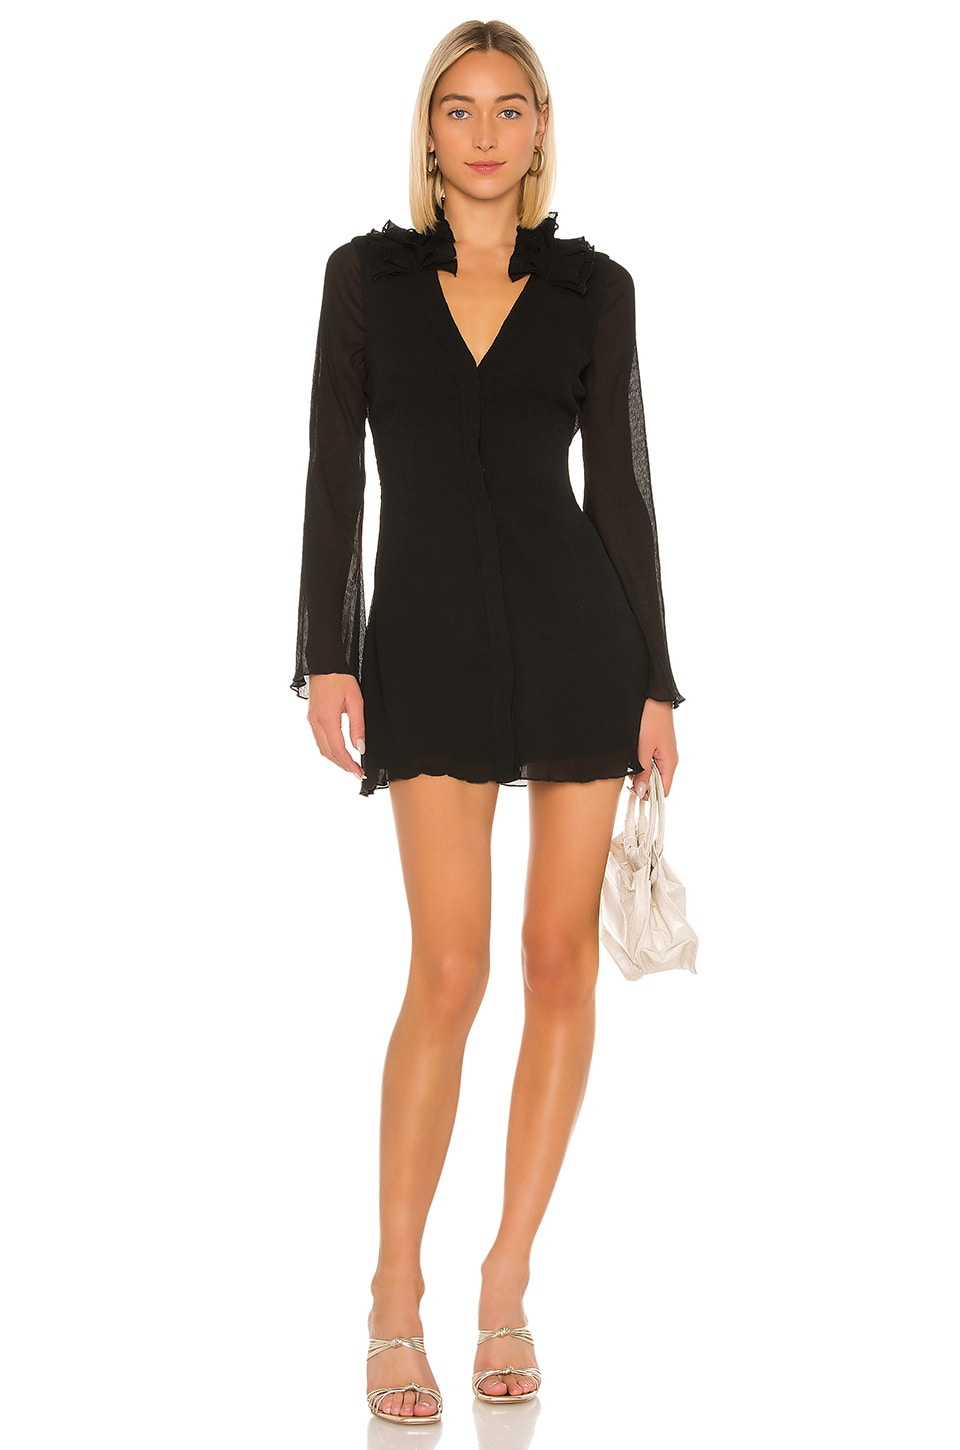 House of Harlow 1960 x REVOLVE Soleil Dress in Noir